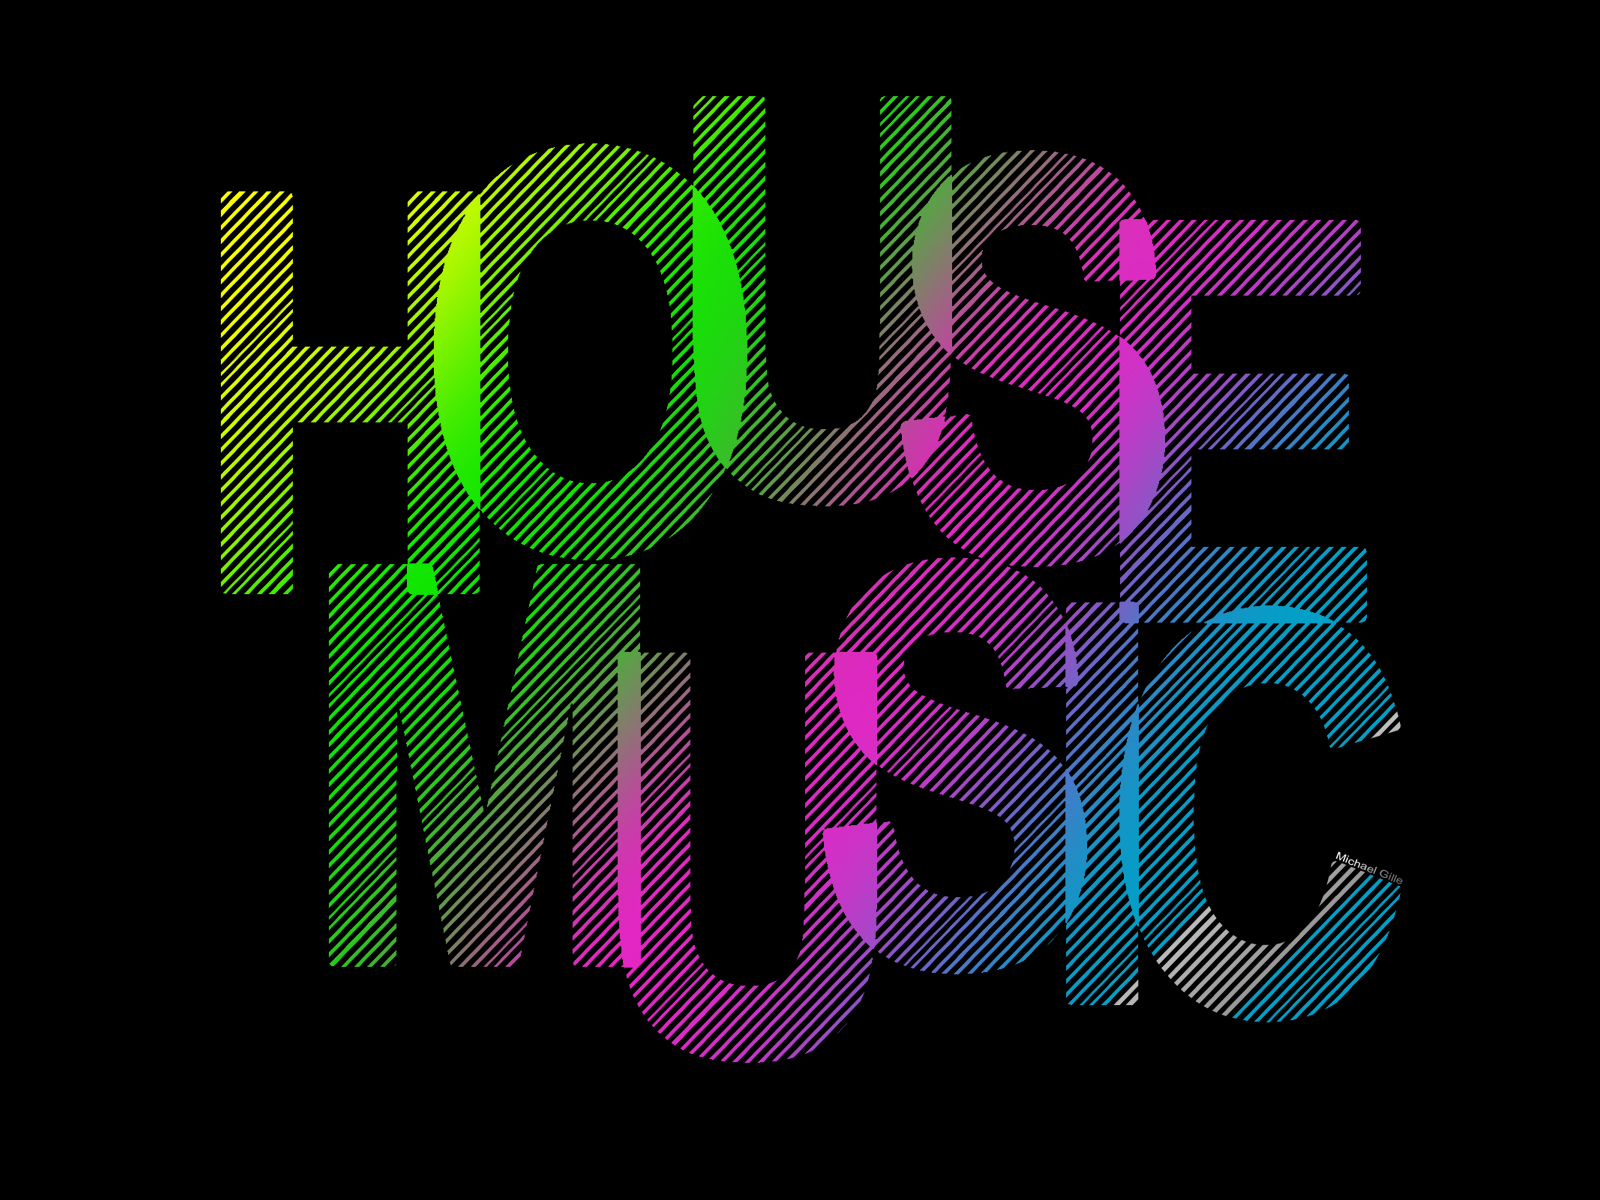 Bringing down the house care package free downloads for 123 get on the dance floor song download